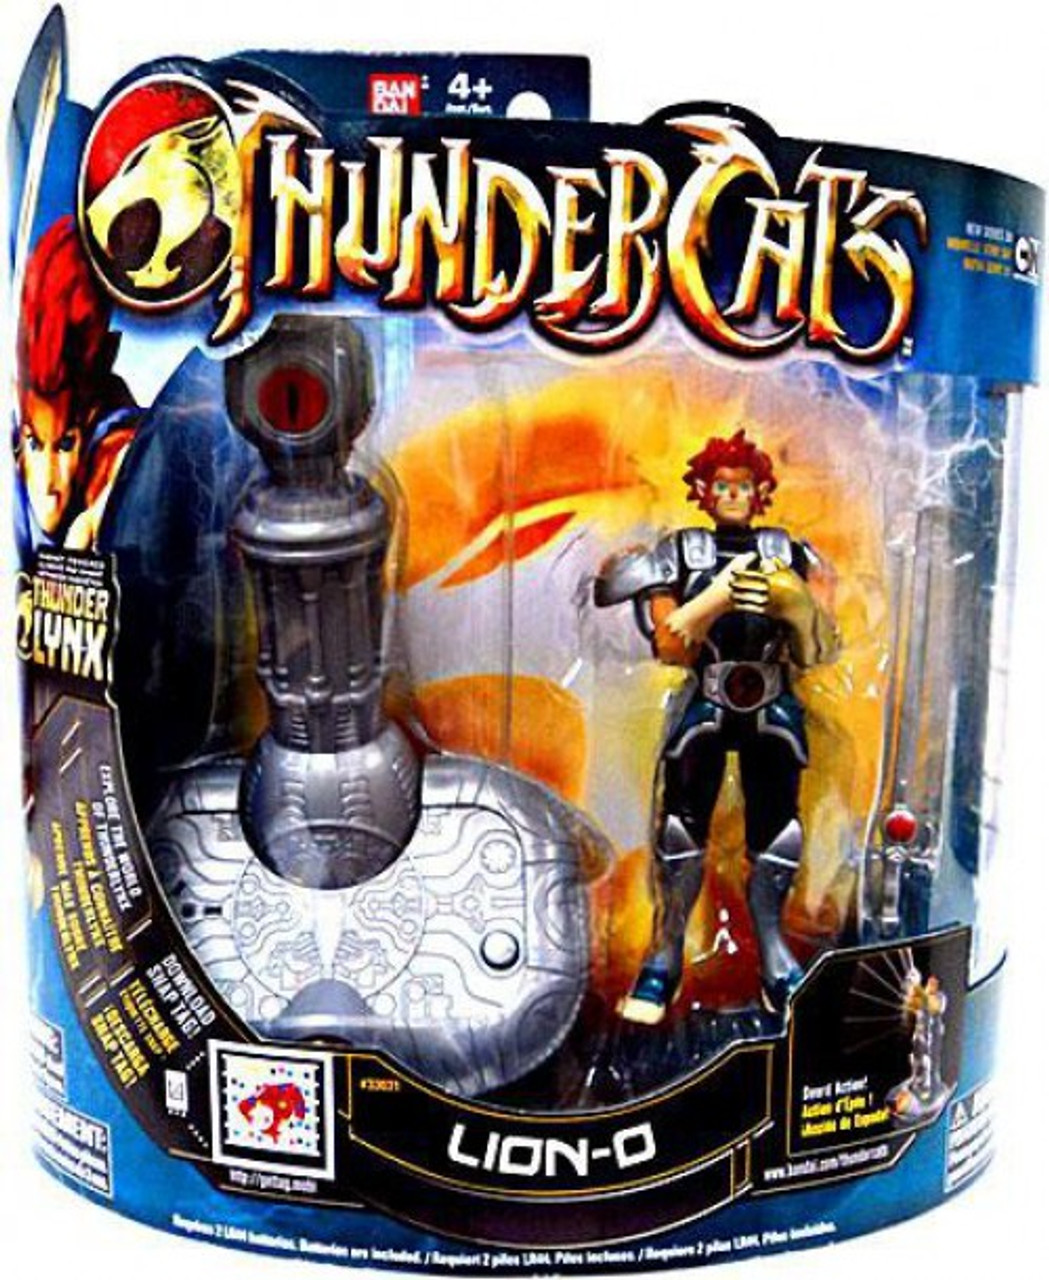 Thundercats Thunder Lynx Deluxe Lion-O Action Figure